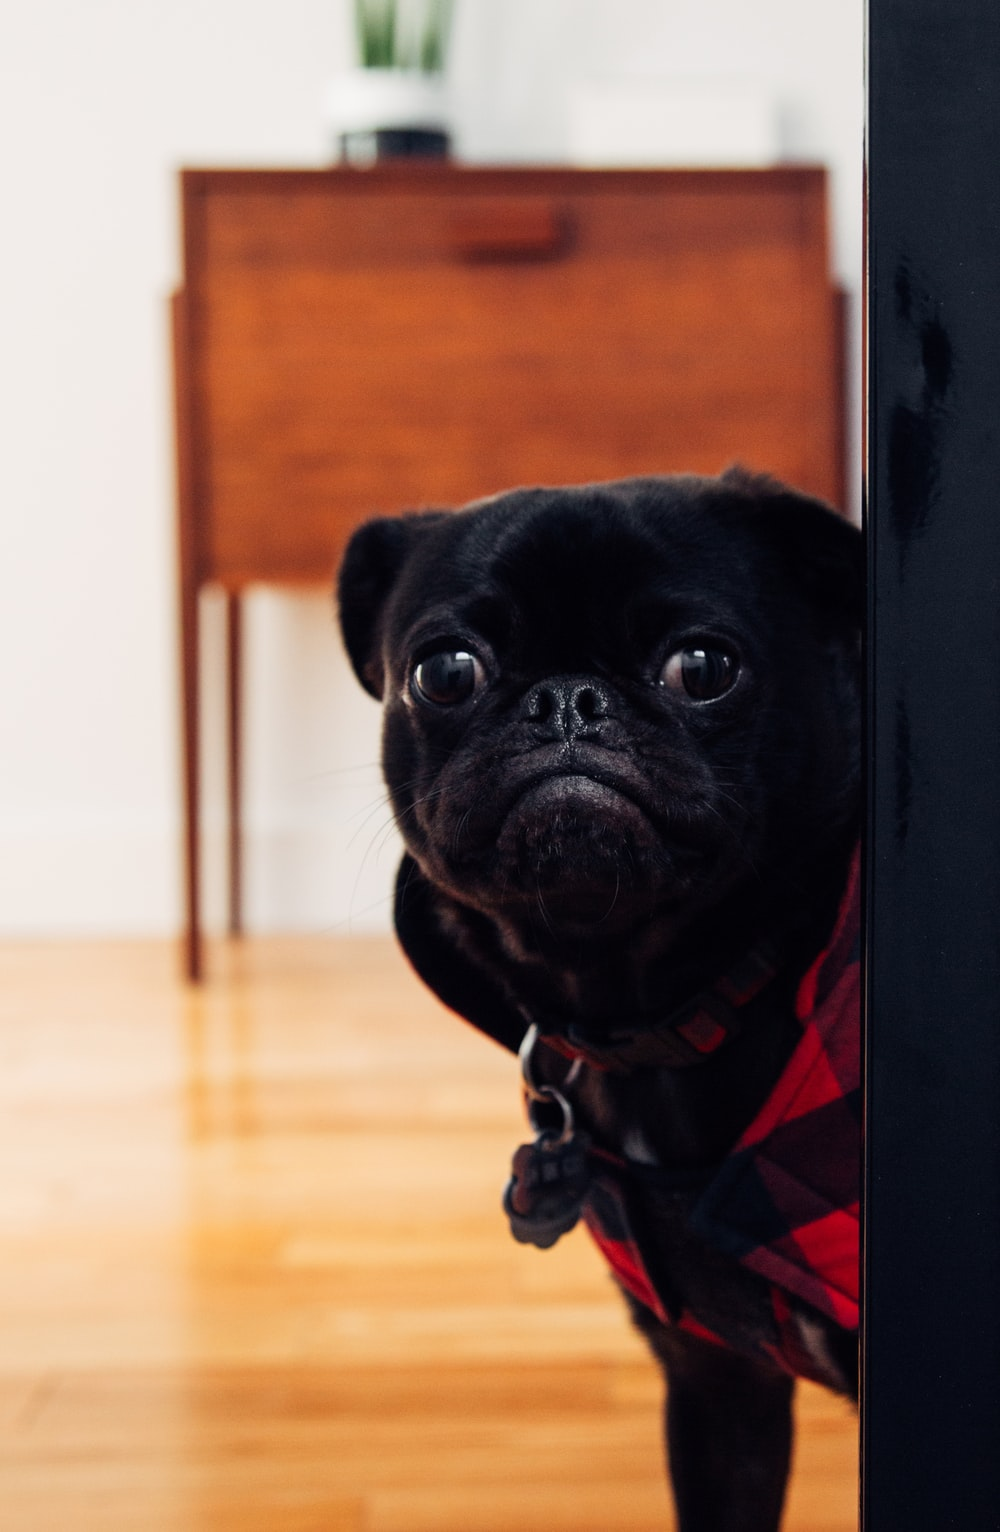 black pug standing on floor